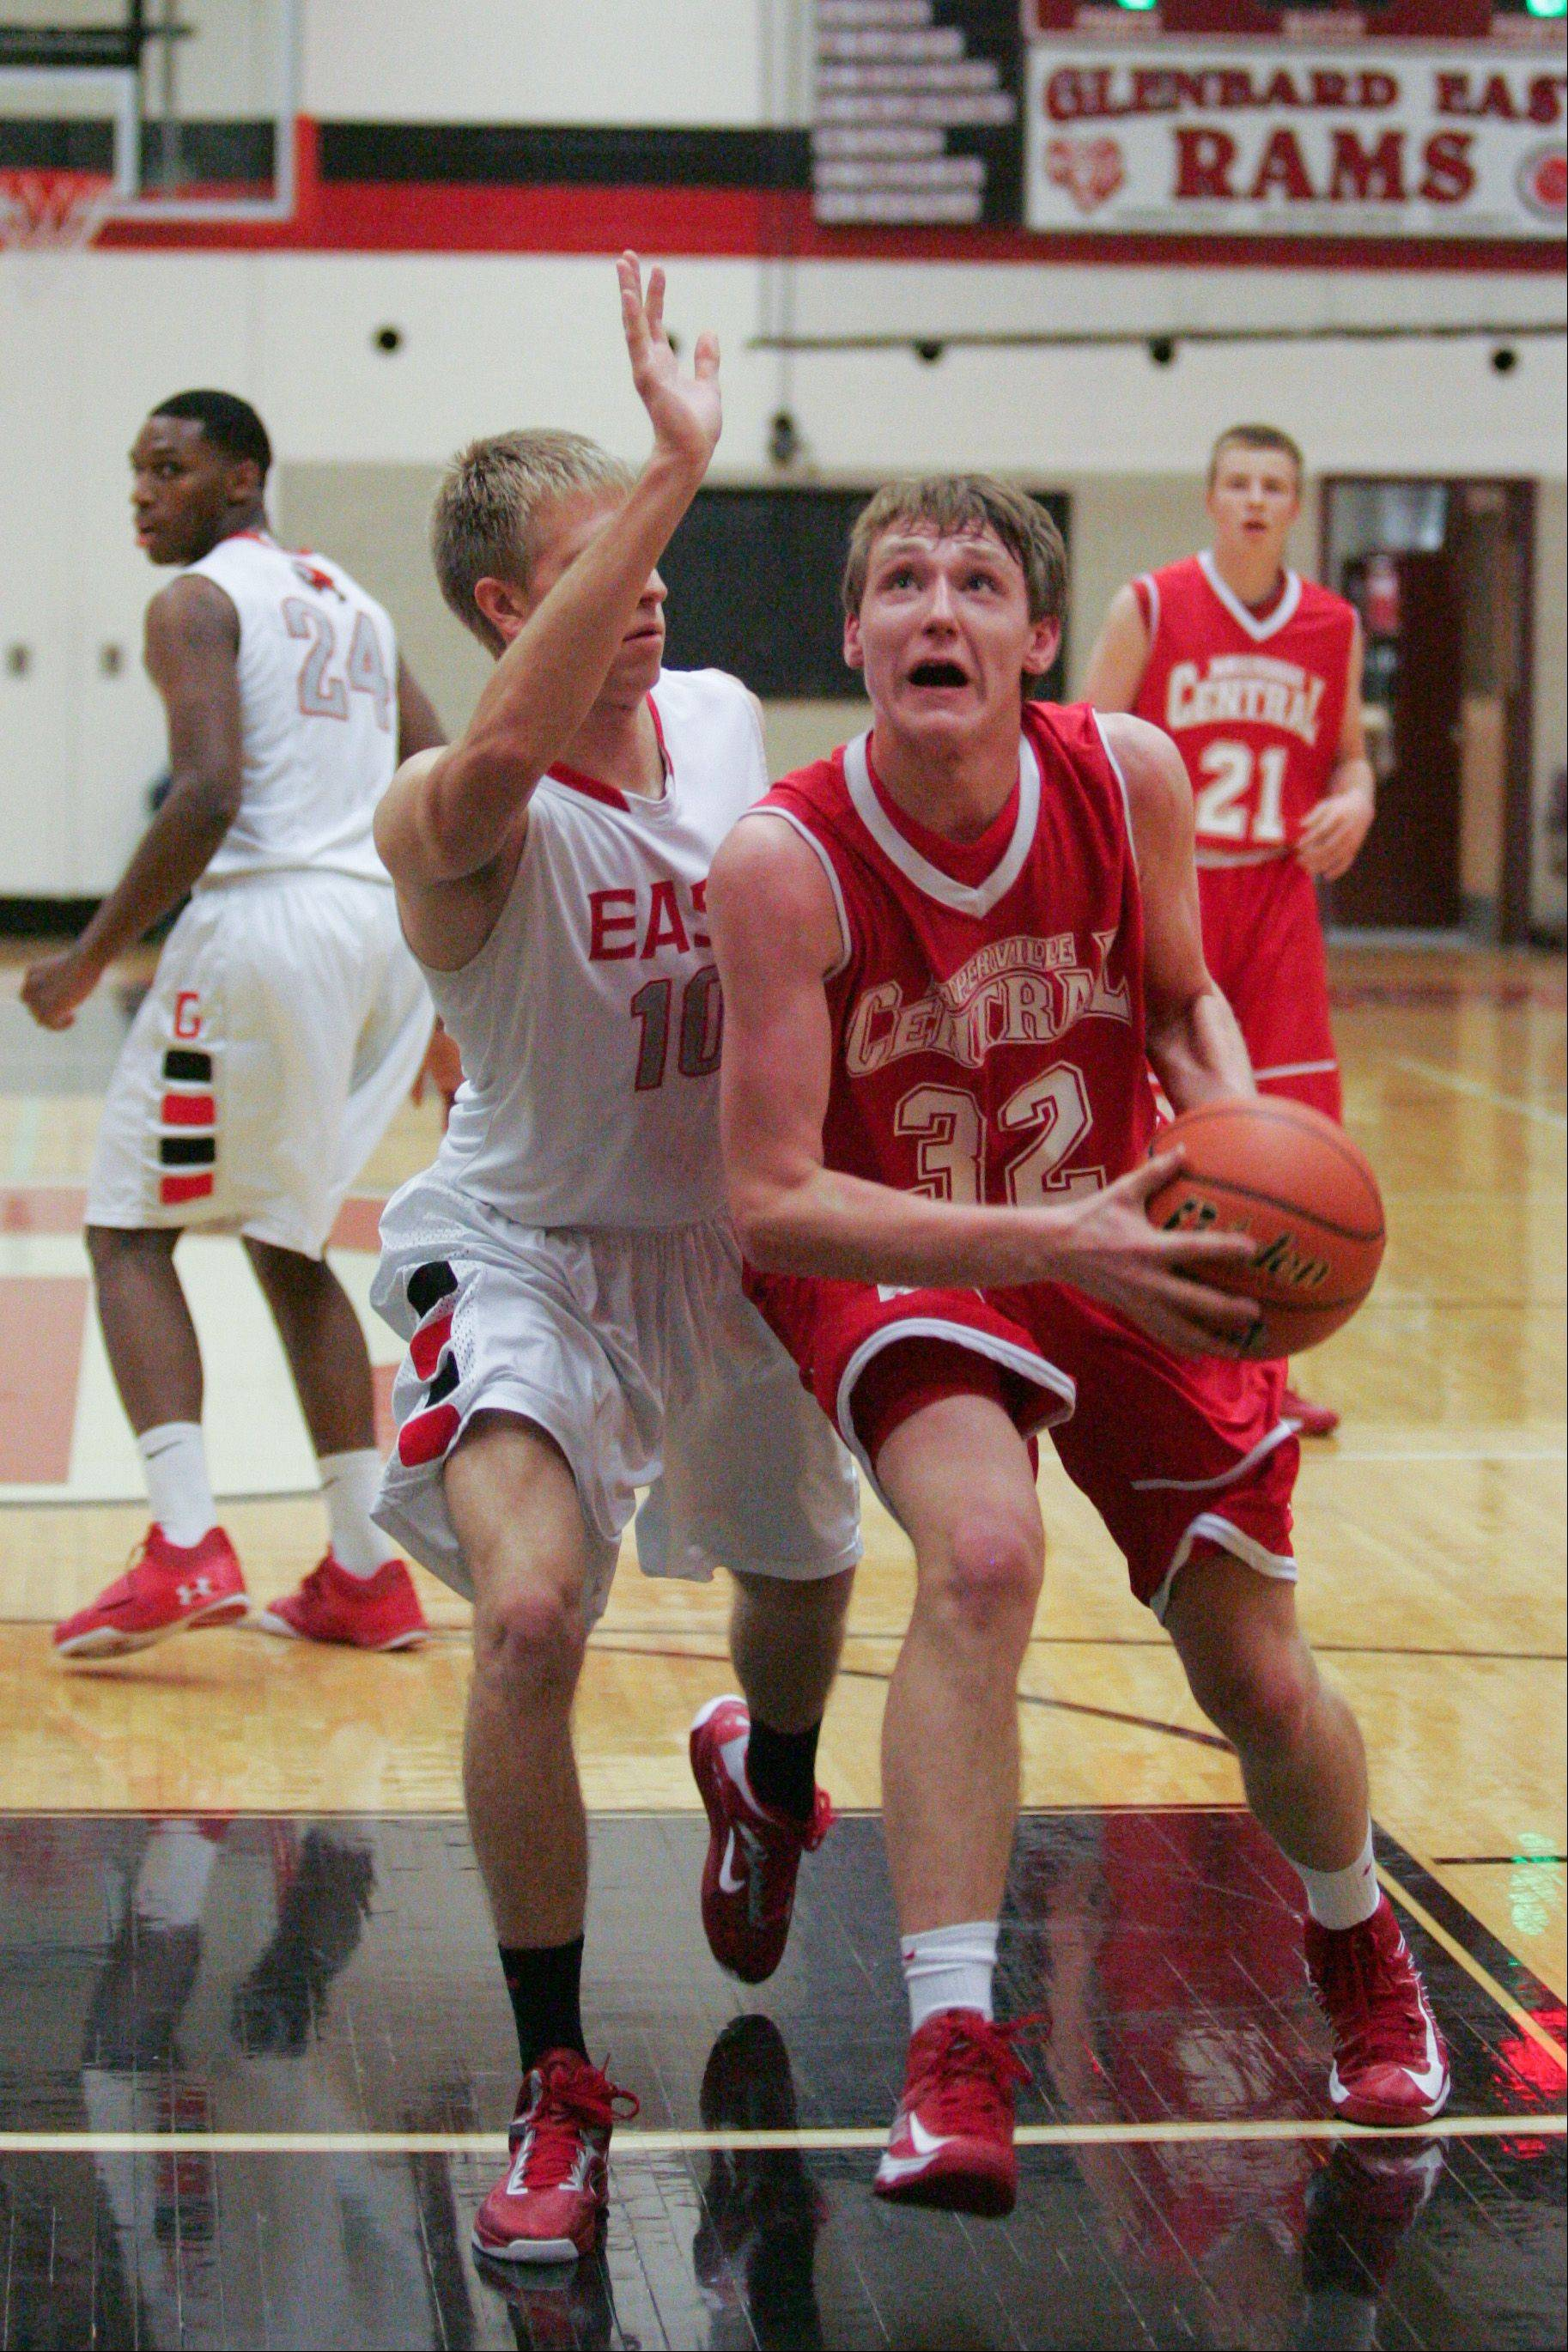 Images from the Naperville Central vs. Glenbard East basketball game in Lombard on Friday, November 29, 2012.